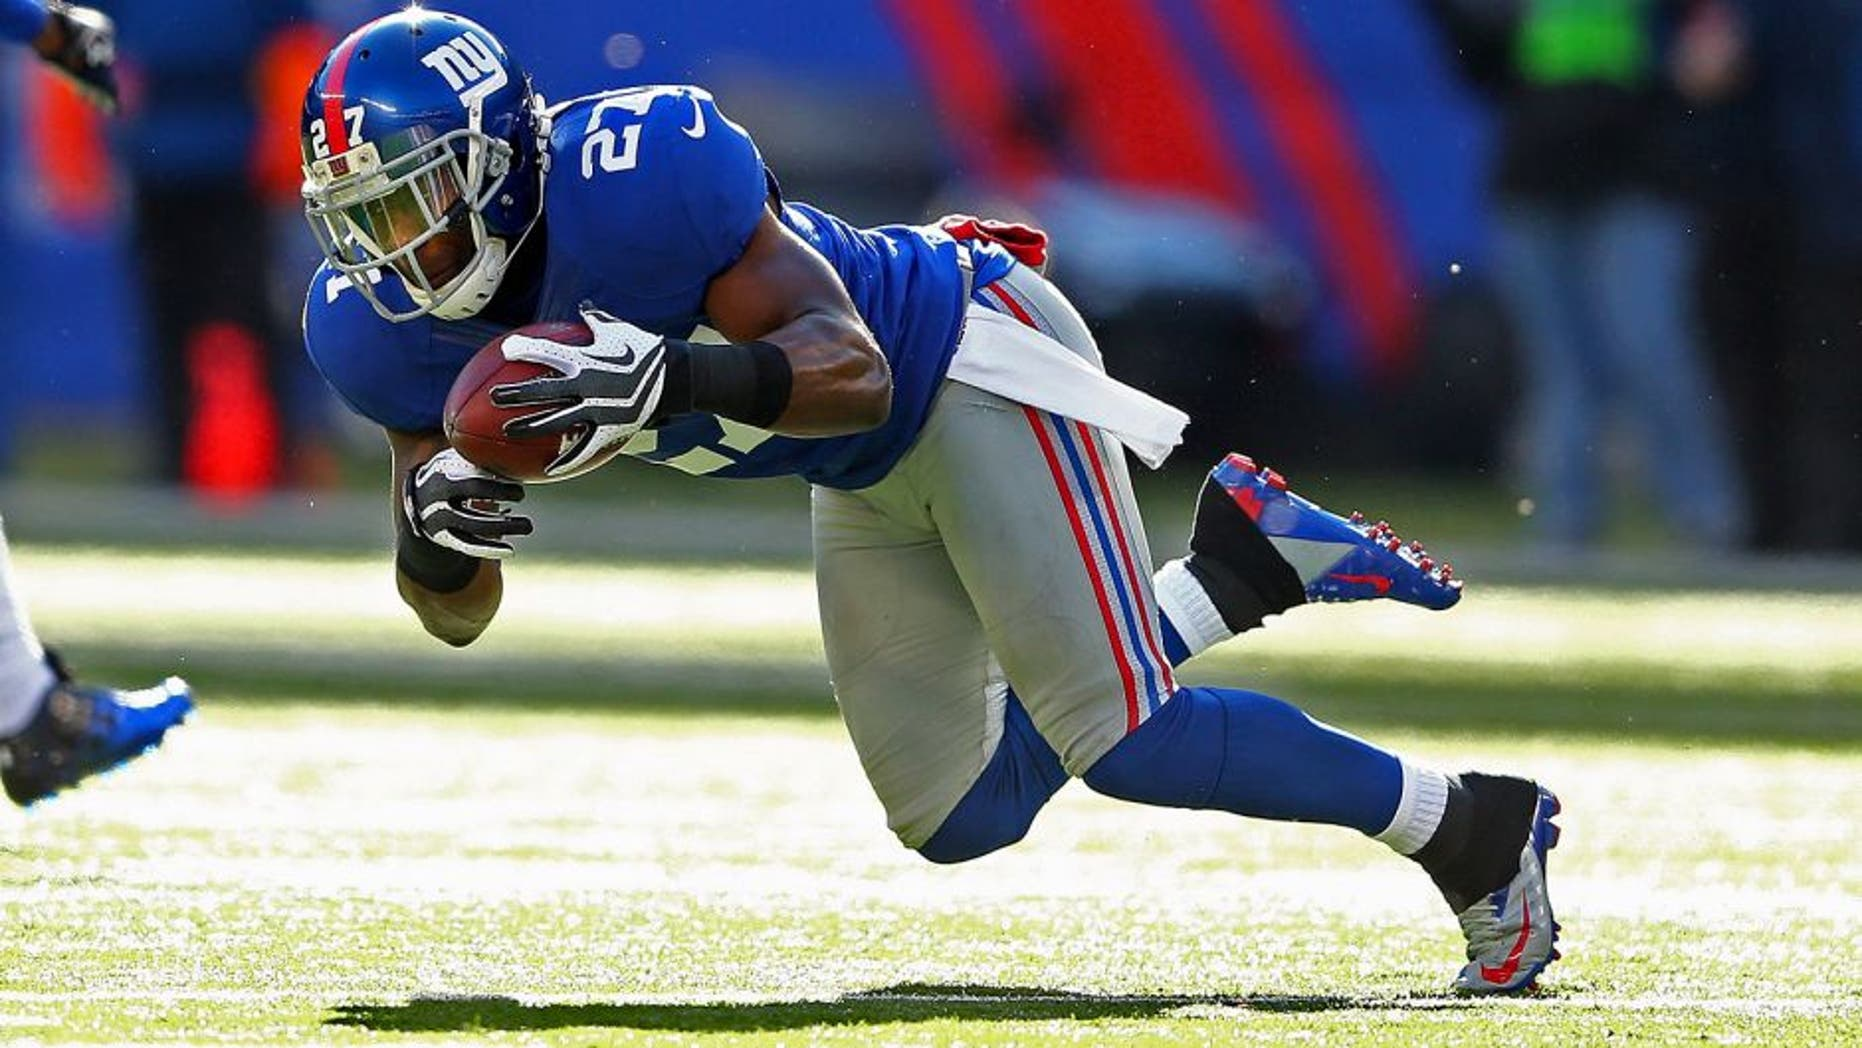 EAST RUTHERFORD, NJ - DECEMBER 30: Stevie Brown #27 of the New York Giants intercepts the ball against the Philadelphia Eagles during their game against the at MetLife Stadium on December 30, 2012 in East Rutherford, New Jersey. (Photo by Al Bello/Getty Images)